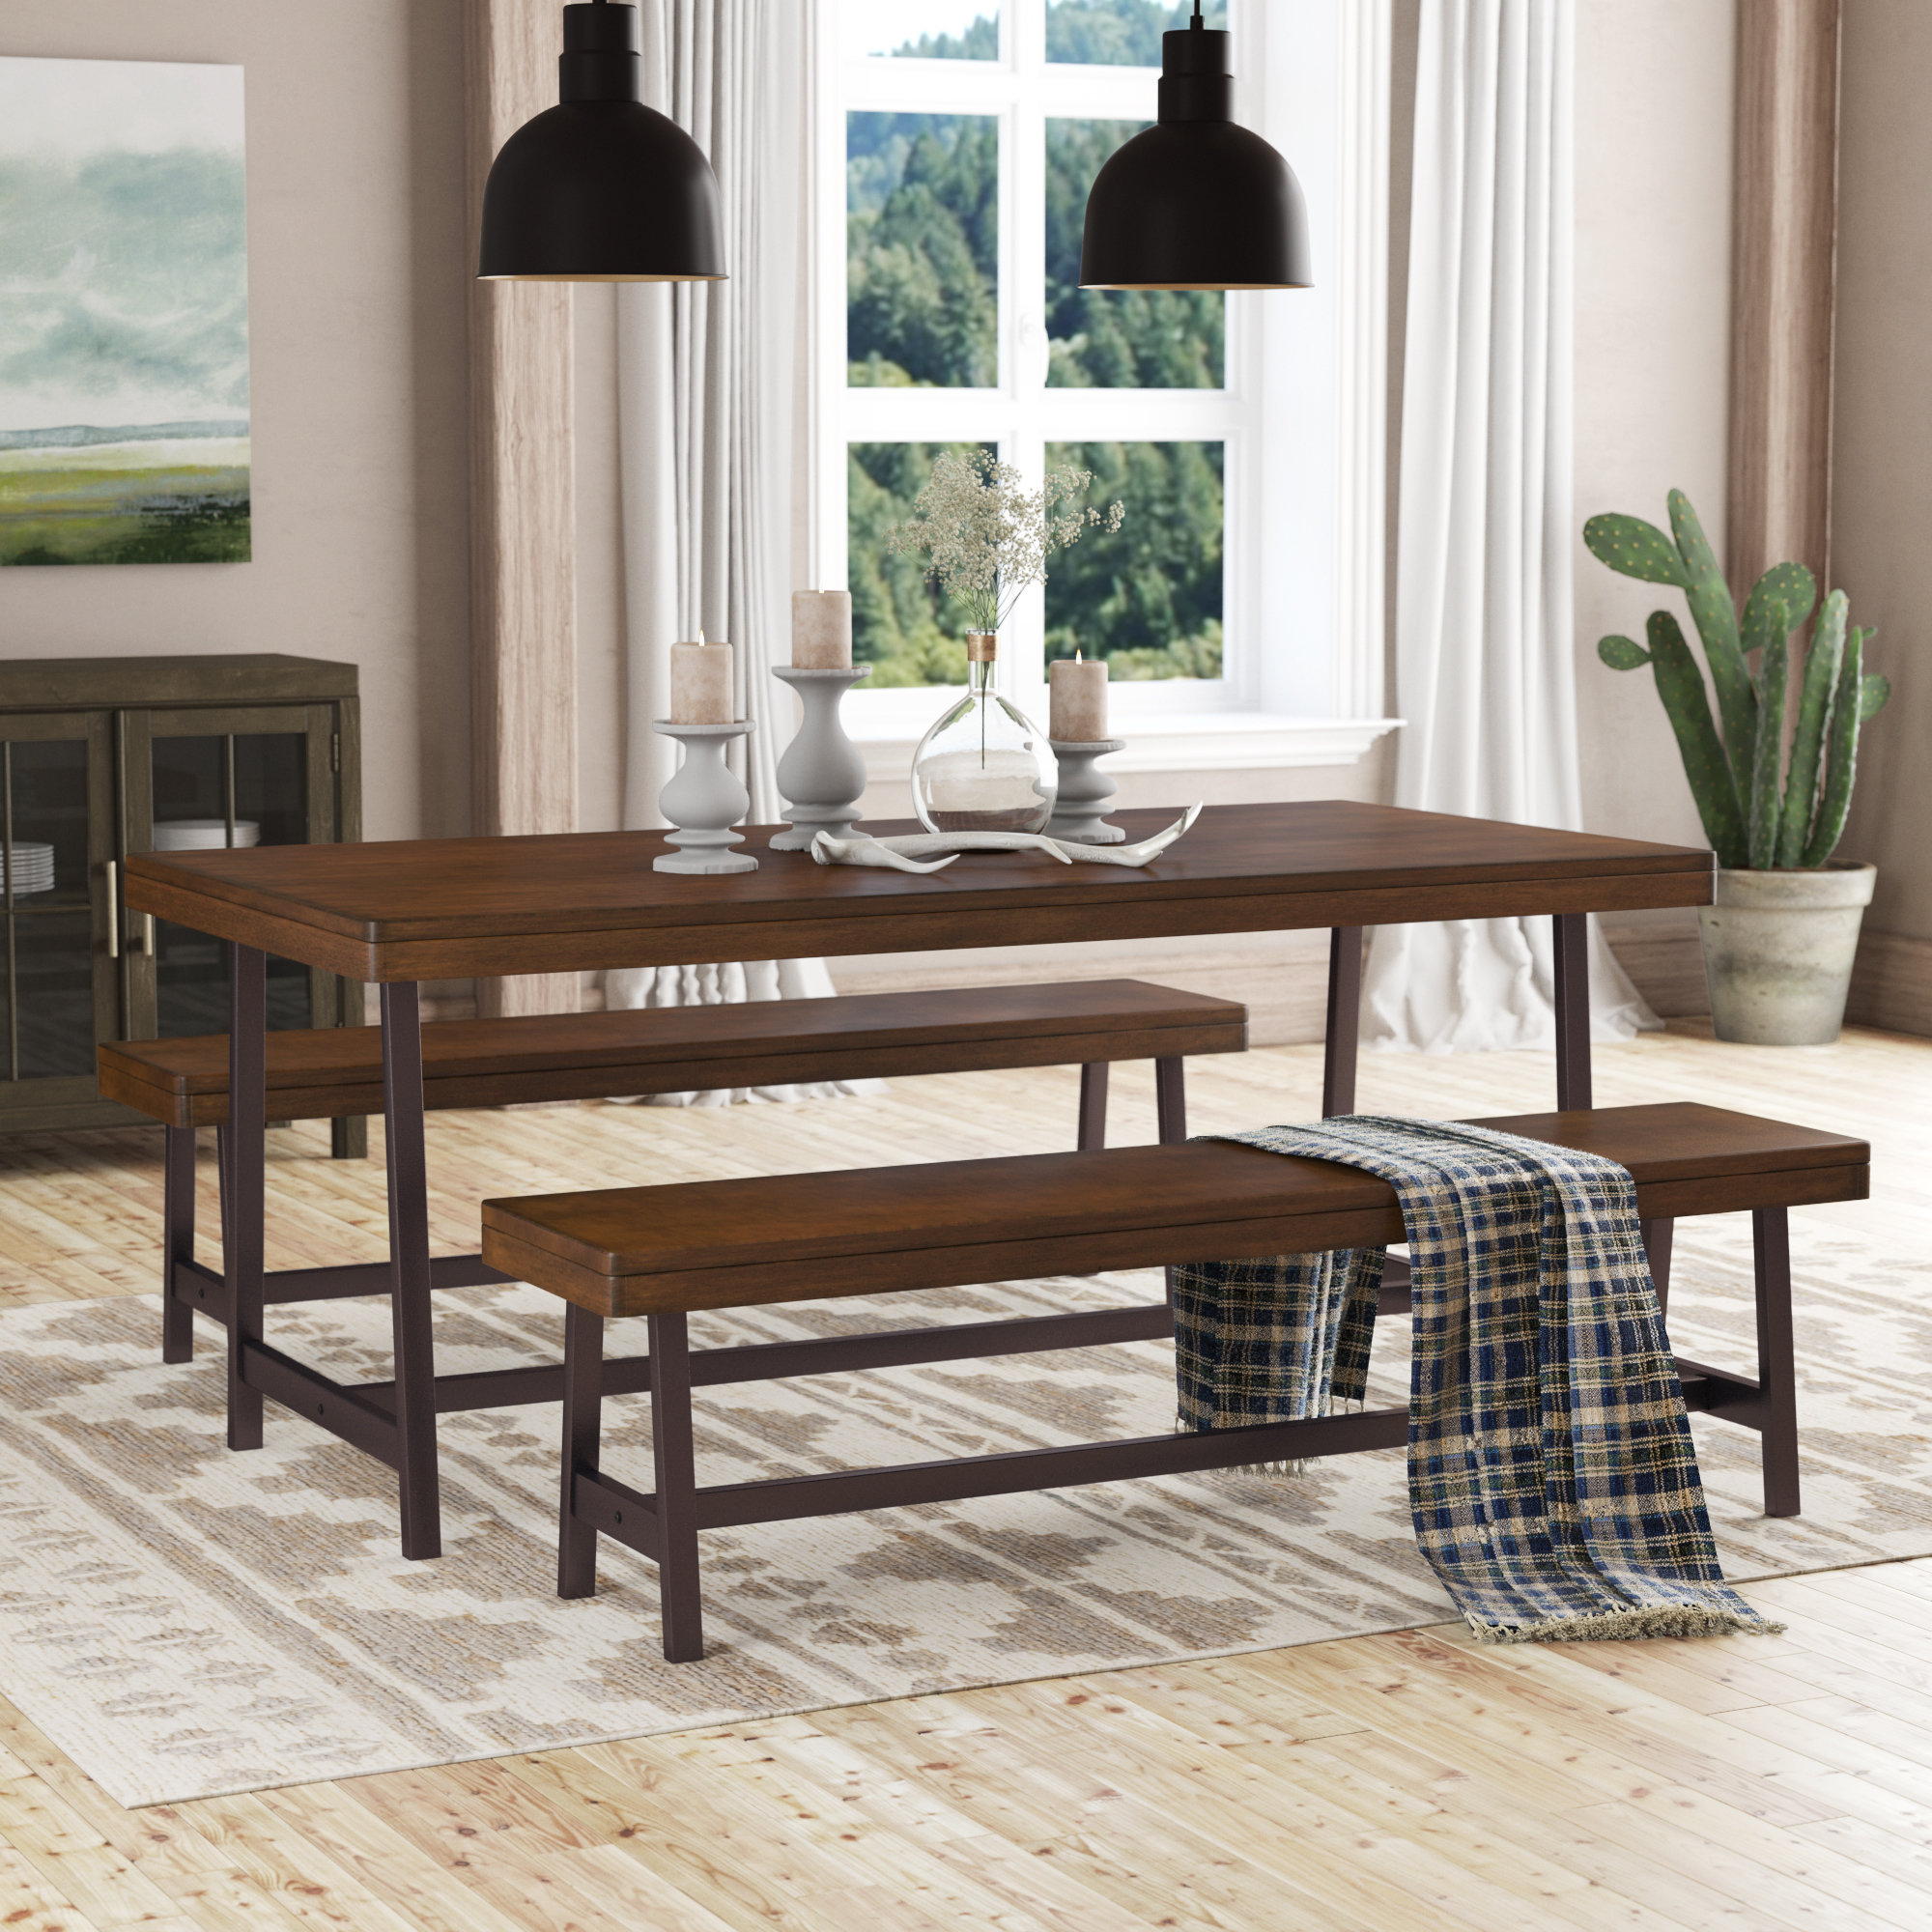 Huntington 3 Piece Dining Set With Recent Frida 3 Piece Dining Table Sets (View 13 of 20)